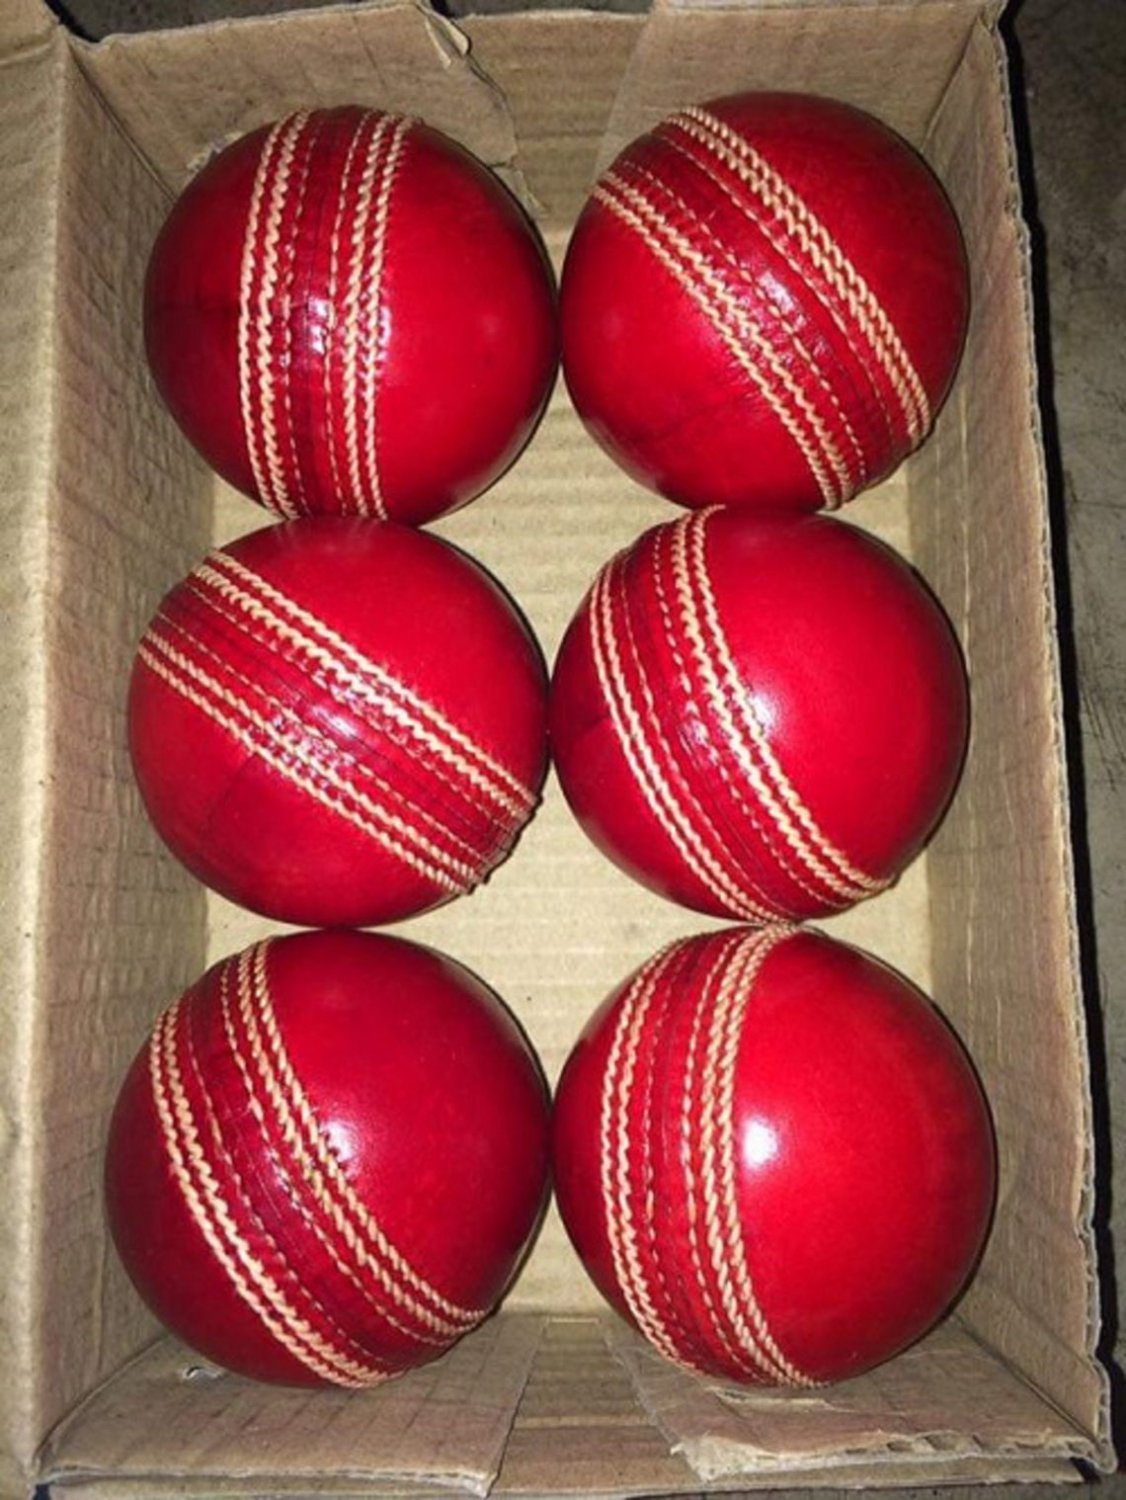 Leather Cricket Ball Red Color A Grade Hand Stitched Practice Cricket Hard Balls - Pack Of 9 Balls